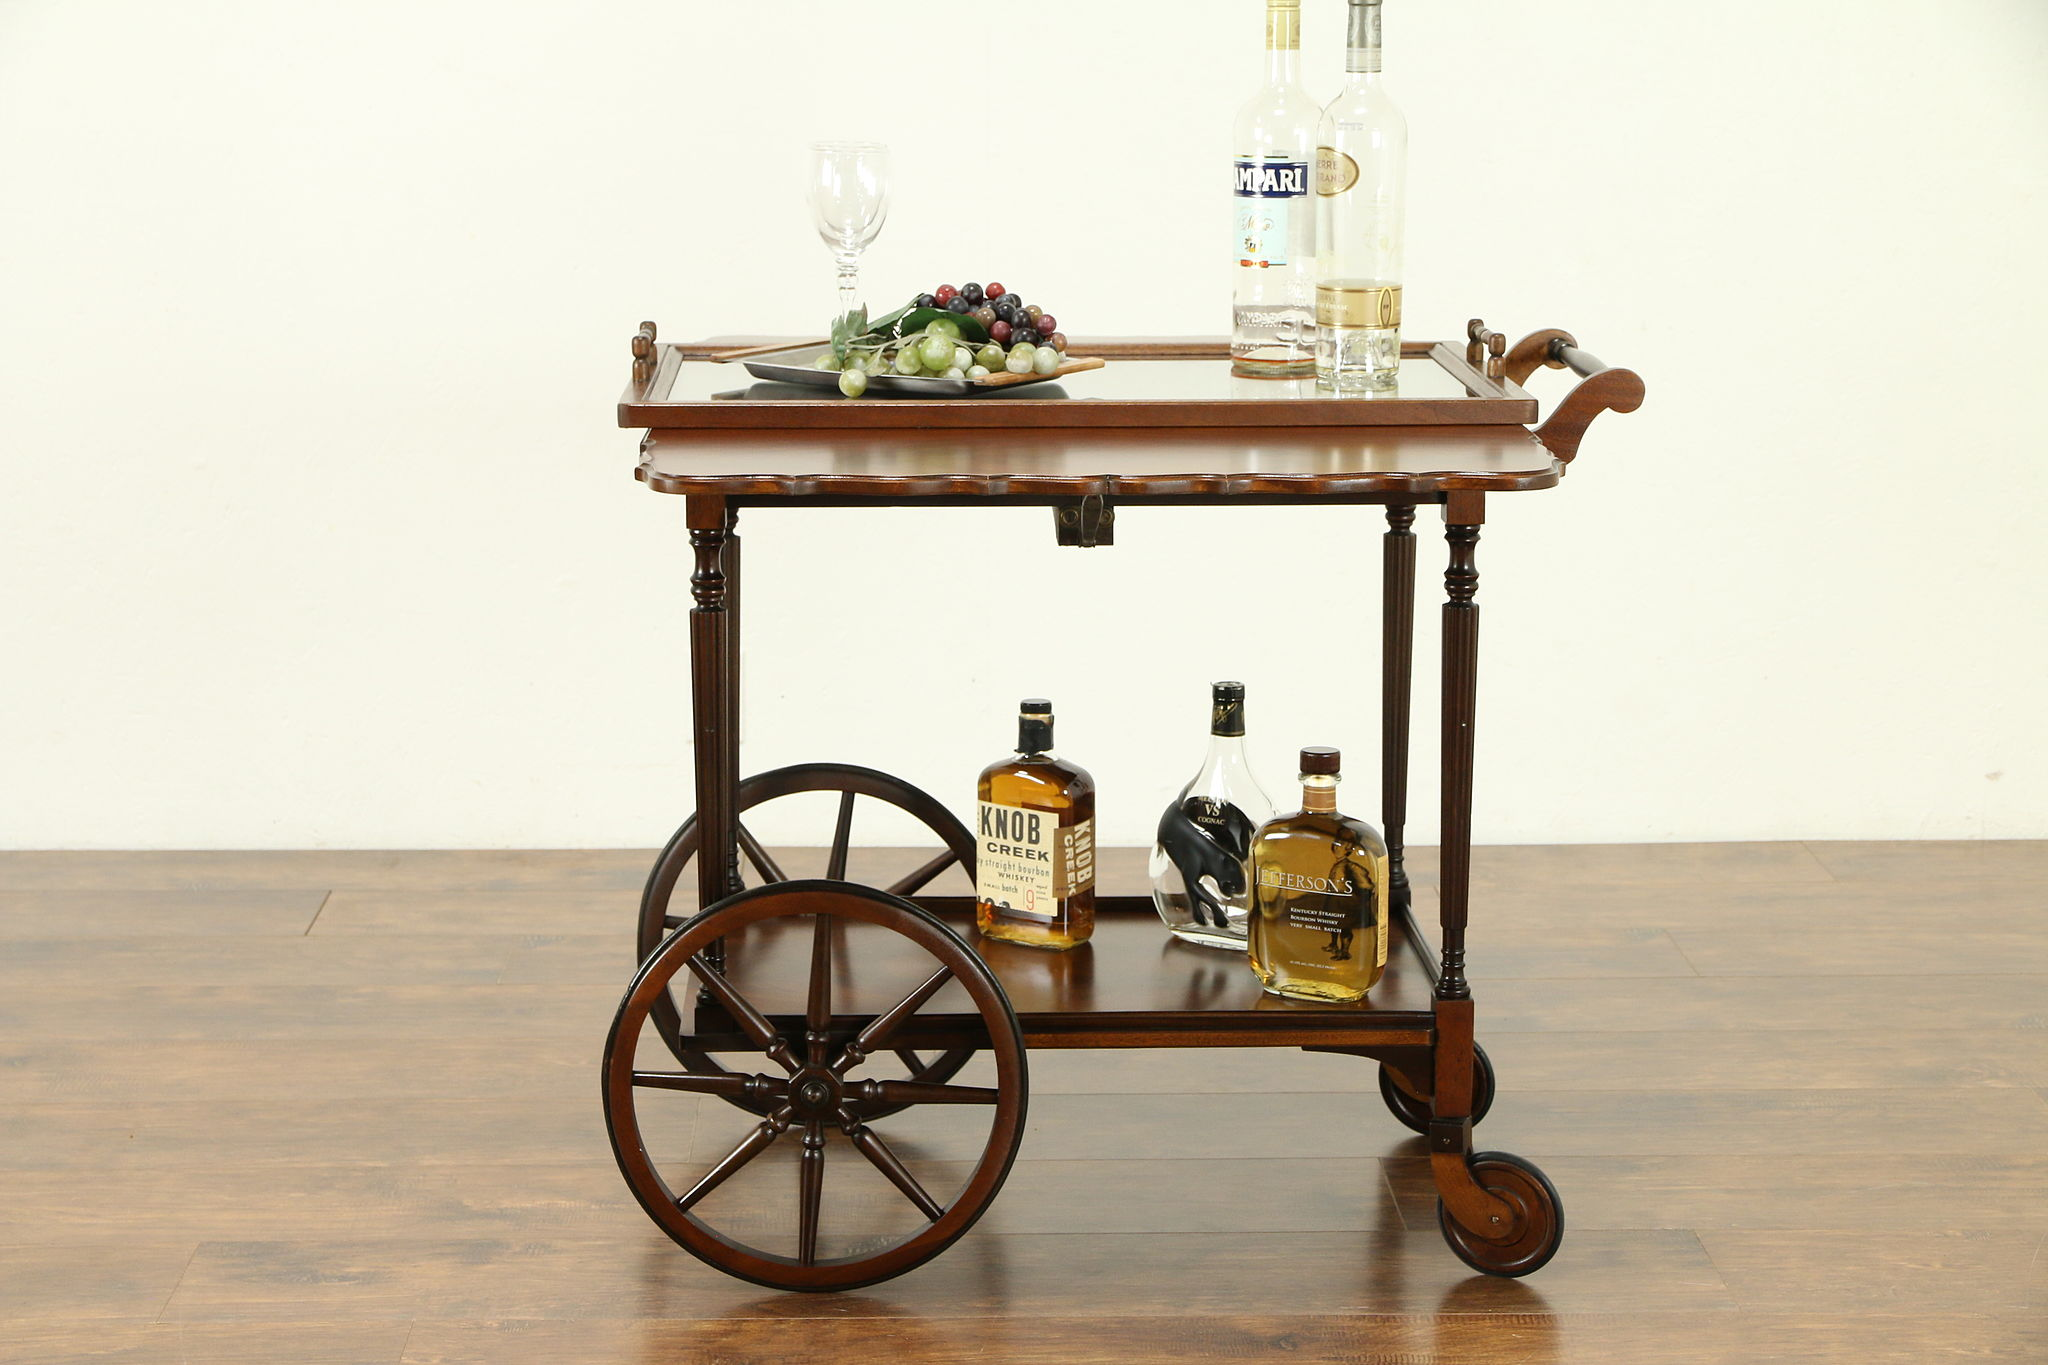 Sold Bar Cart Antique Mahogany Dessert Or Beverage Trolley Signed 1918 30797 Harp Gallery Antiques Furniture